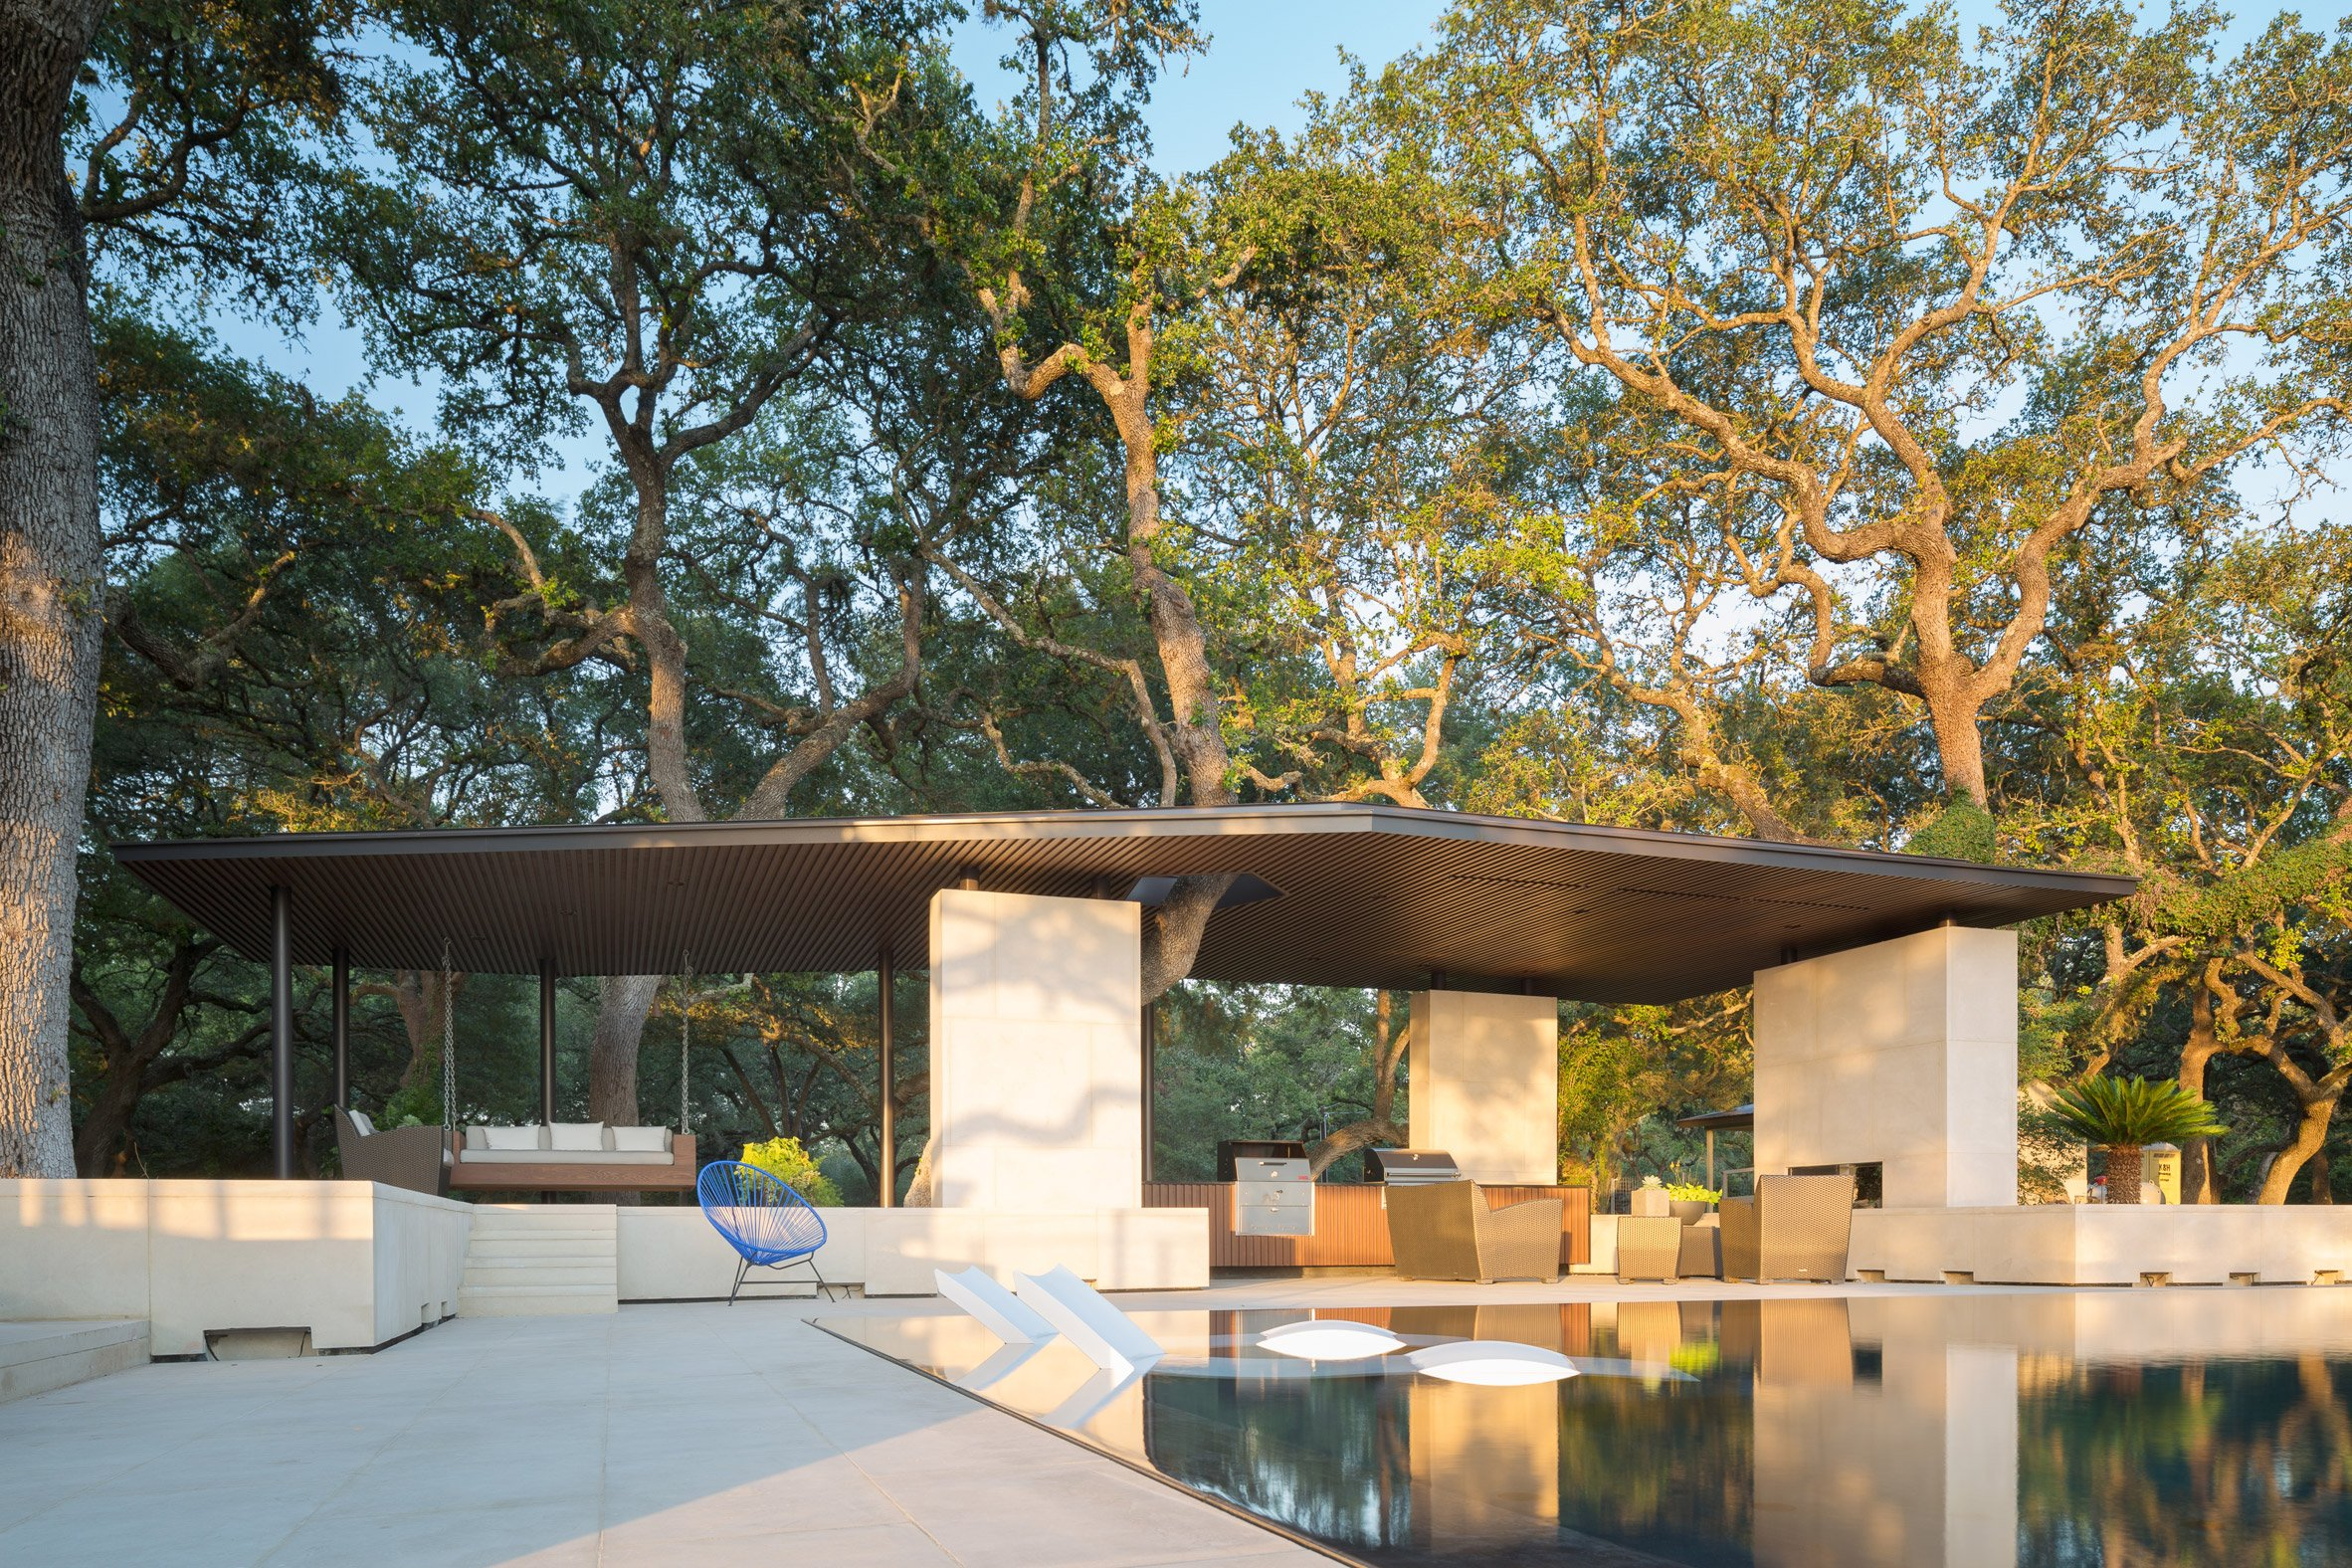 Murray Legge's Texas pool house avoids and incorporates tree trunks